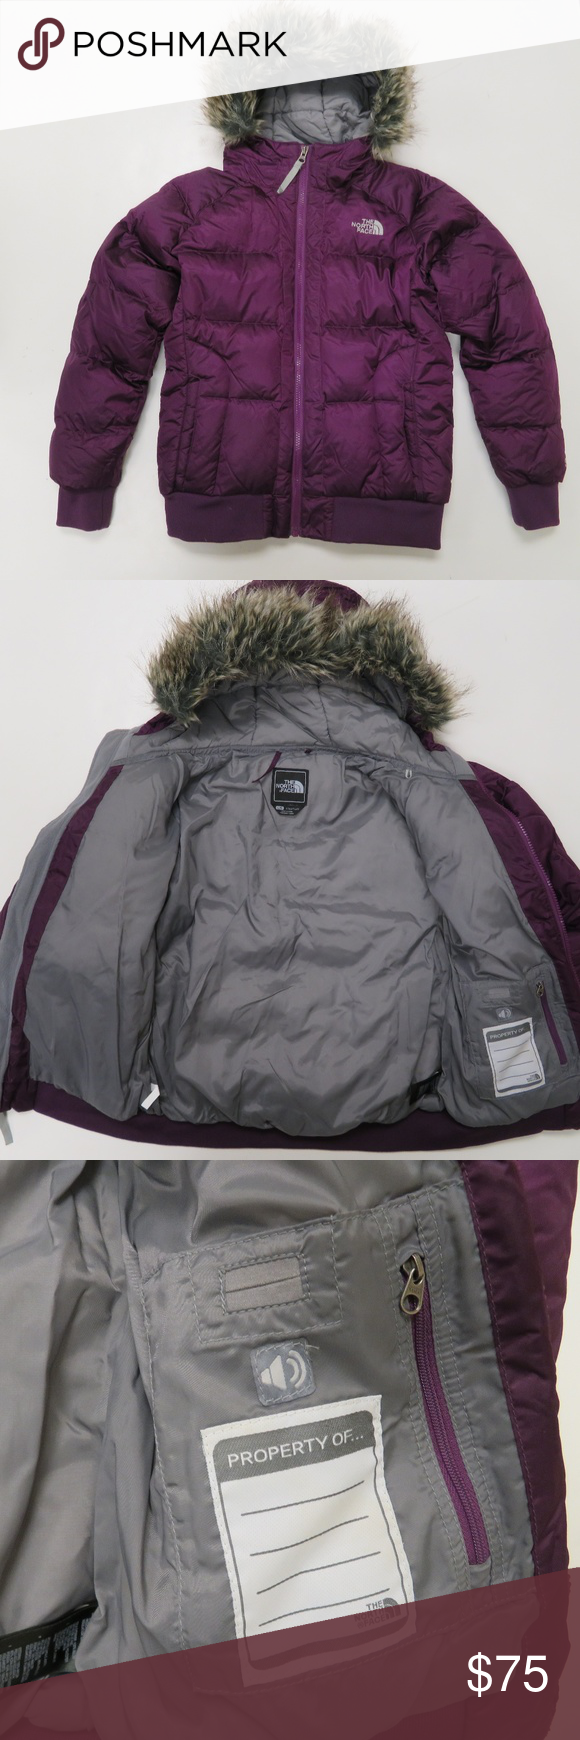 North Face 550 Down Purple Hood Faux Fur Jacket The North Face Girls Size Large Purple 550 Goose Down Puffer Jacket With A F Faux Fur Jacket Fur Jacket Jackets [ 1740 x 580 Pixel ]